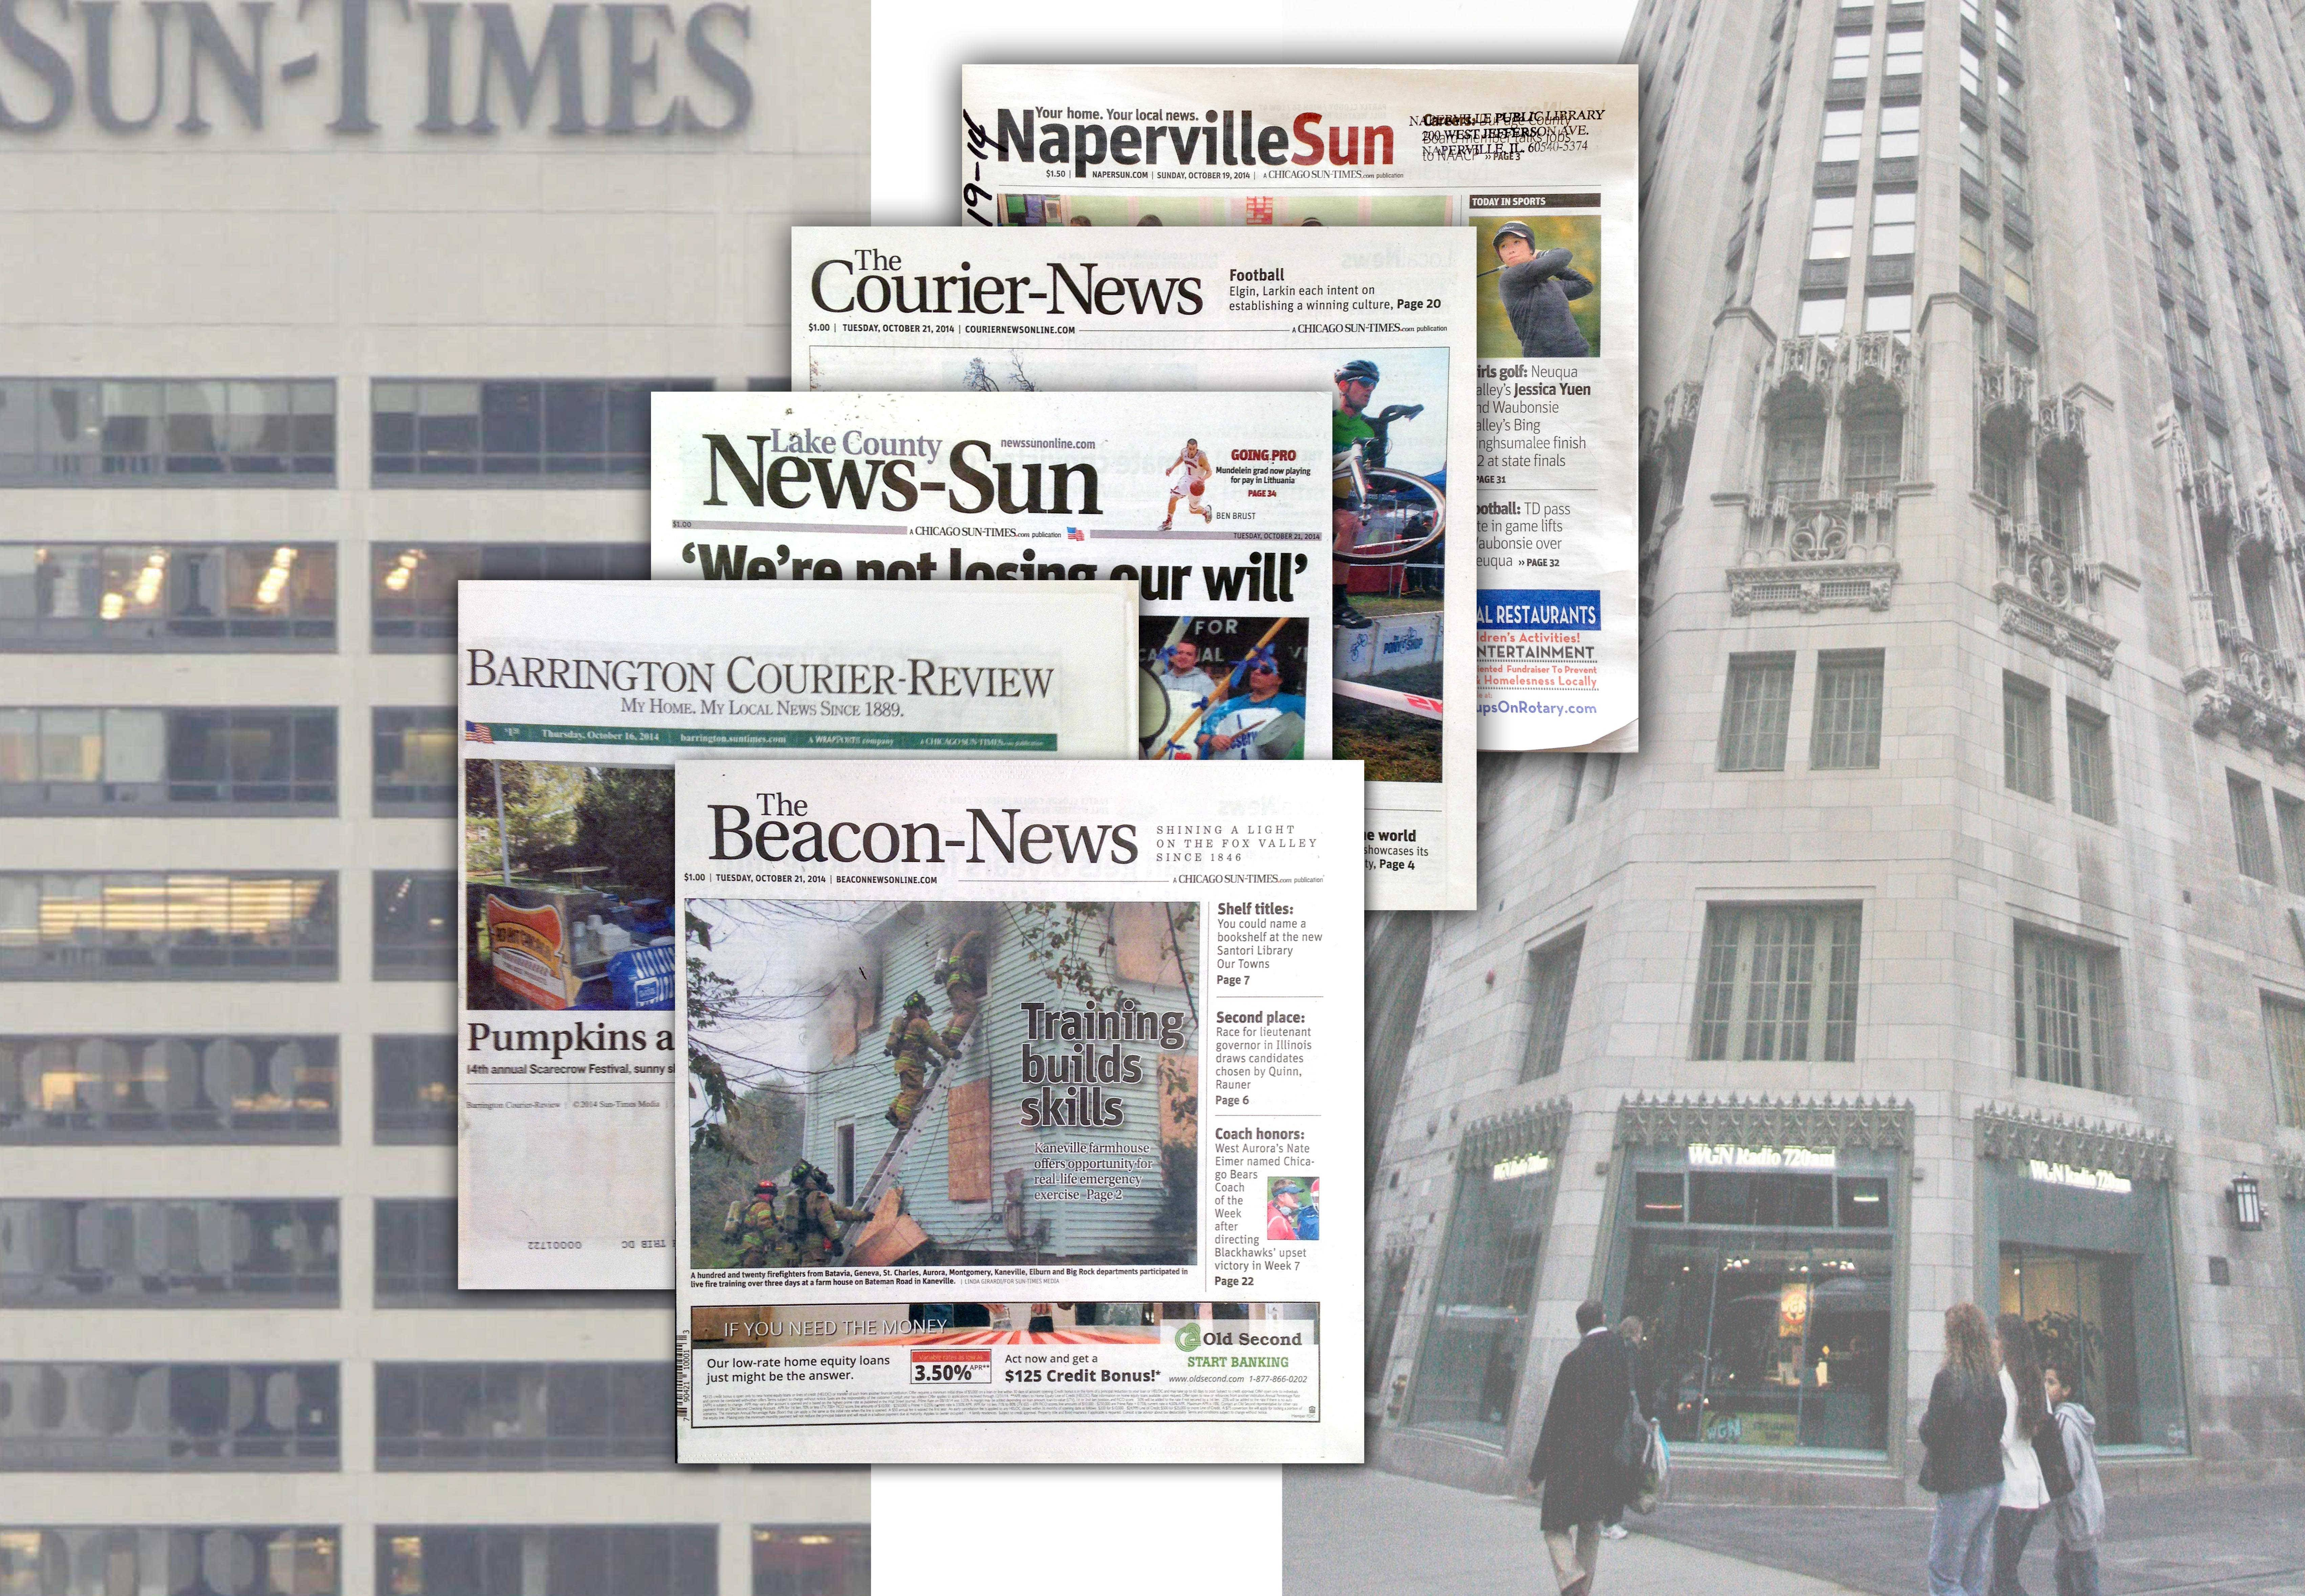 Suburban newspapers poised for change if sold by Sun-Times